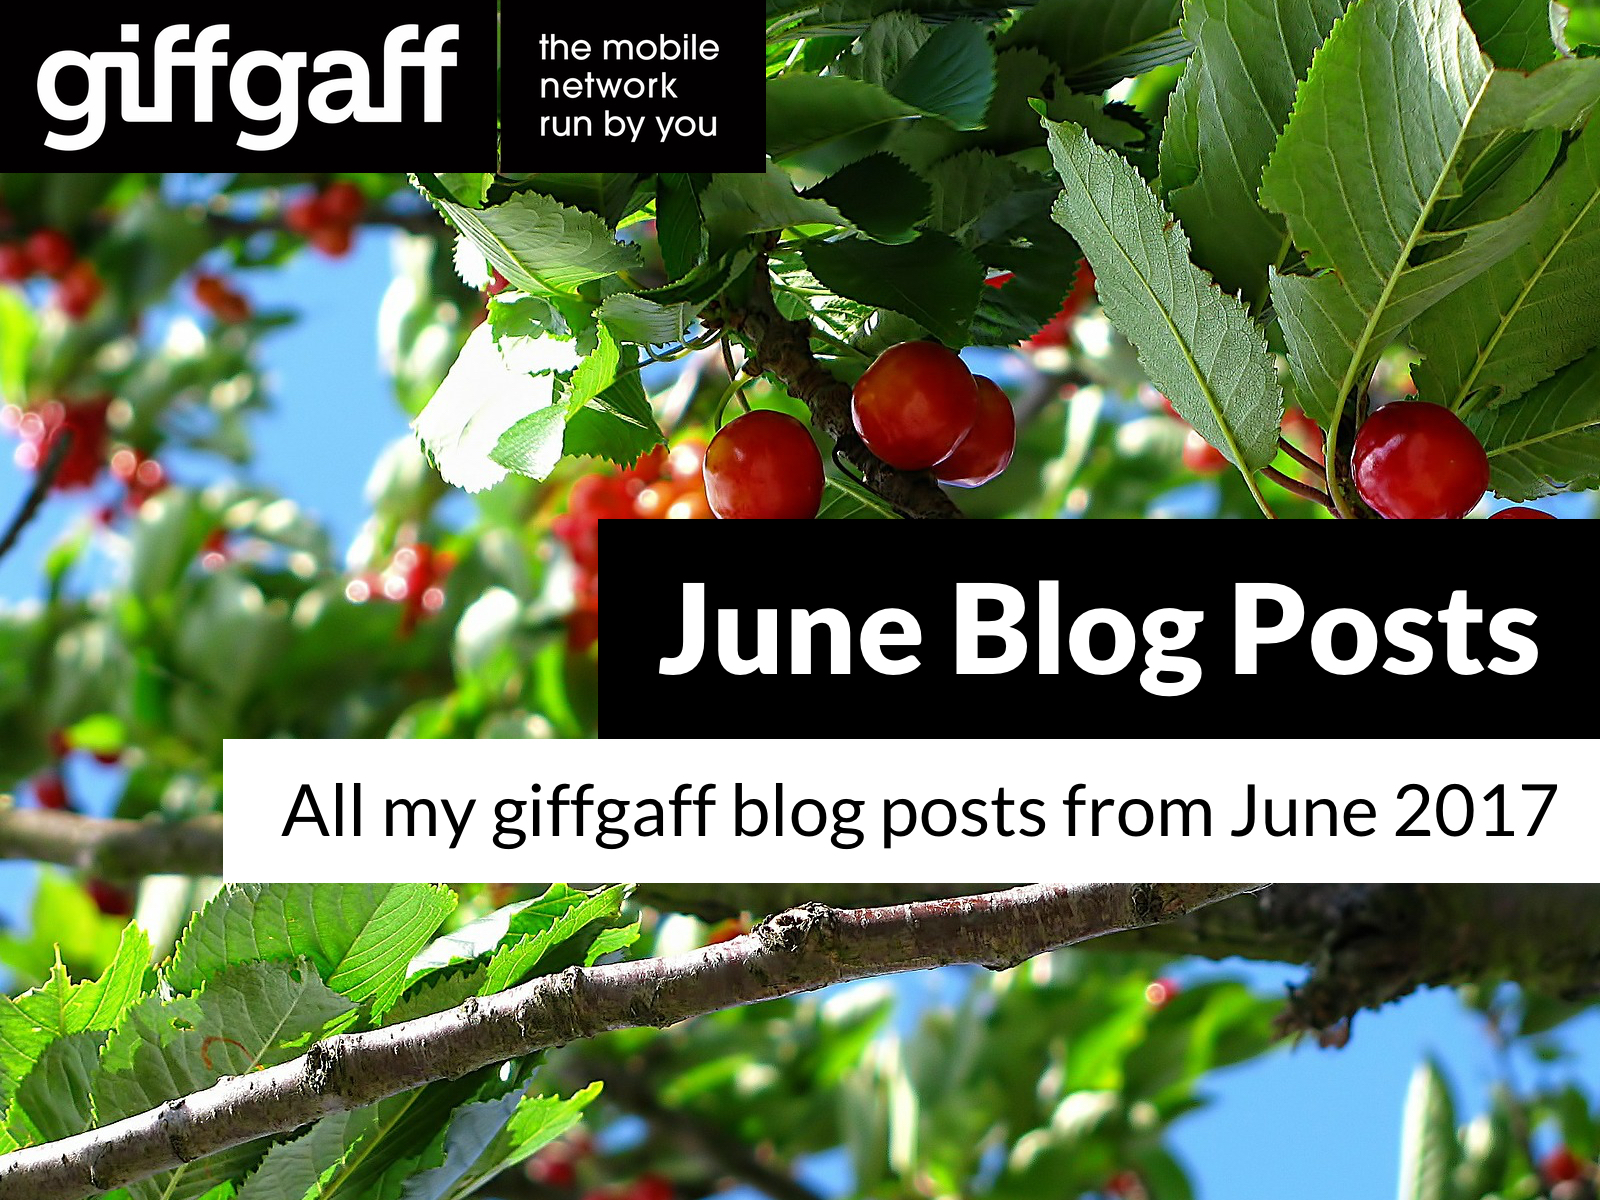 June 2017 Blog Posts